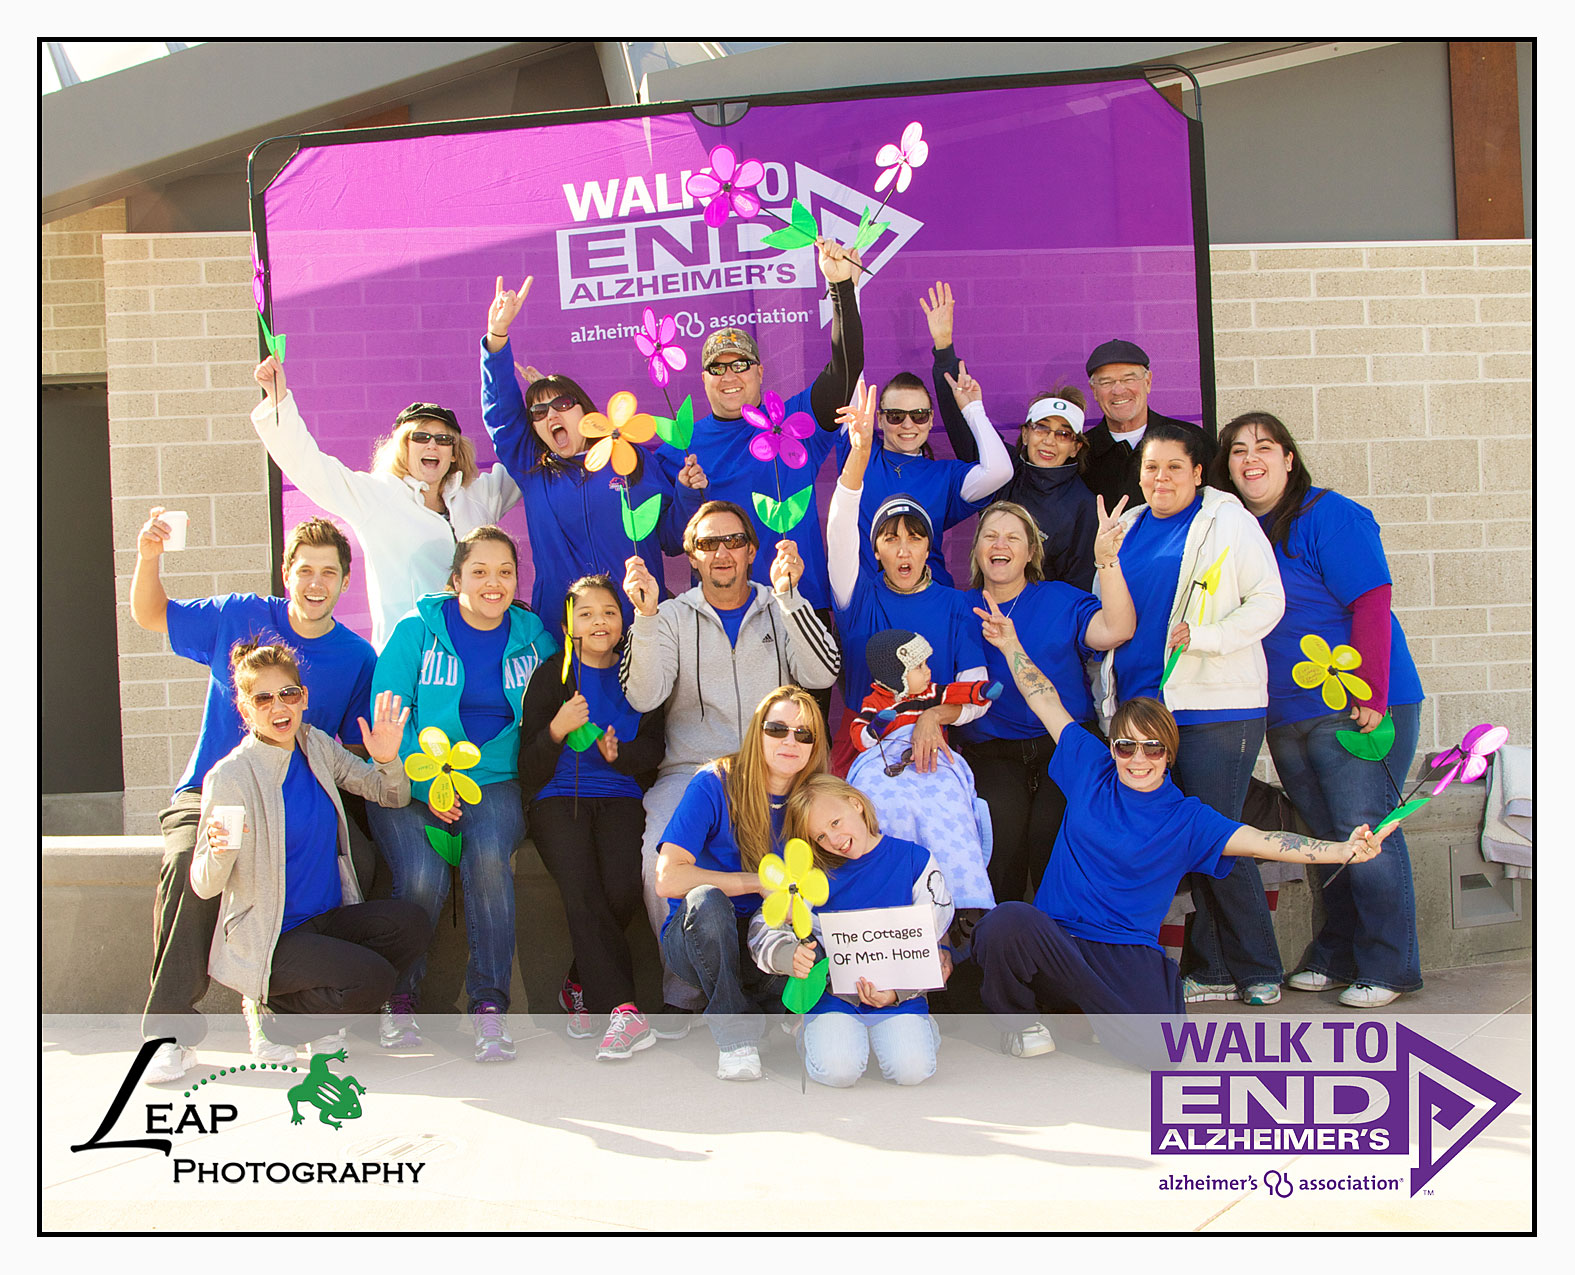 Team portrait at Walk to End Alzheimer's